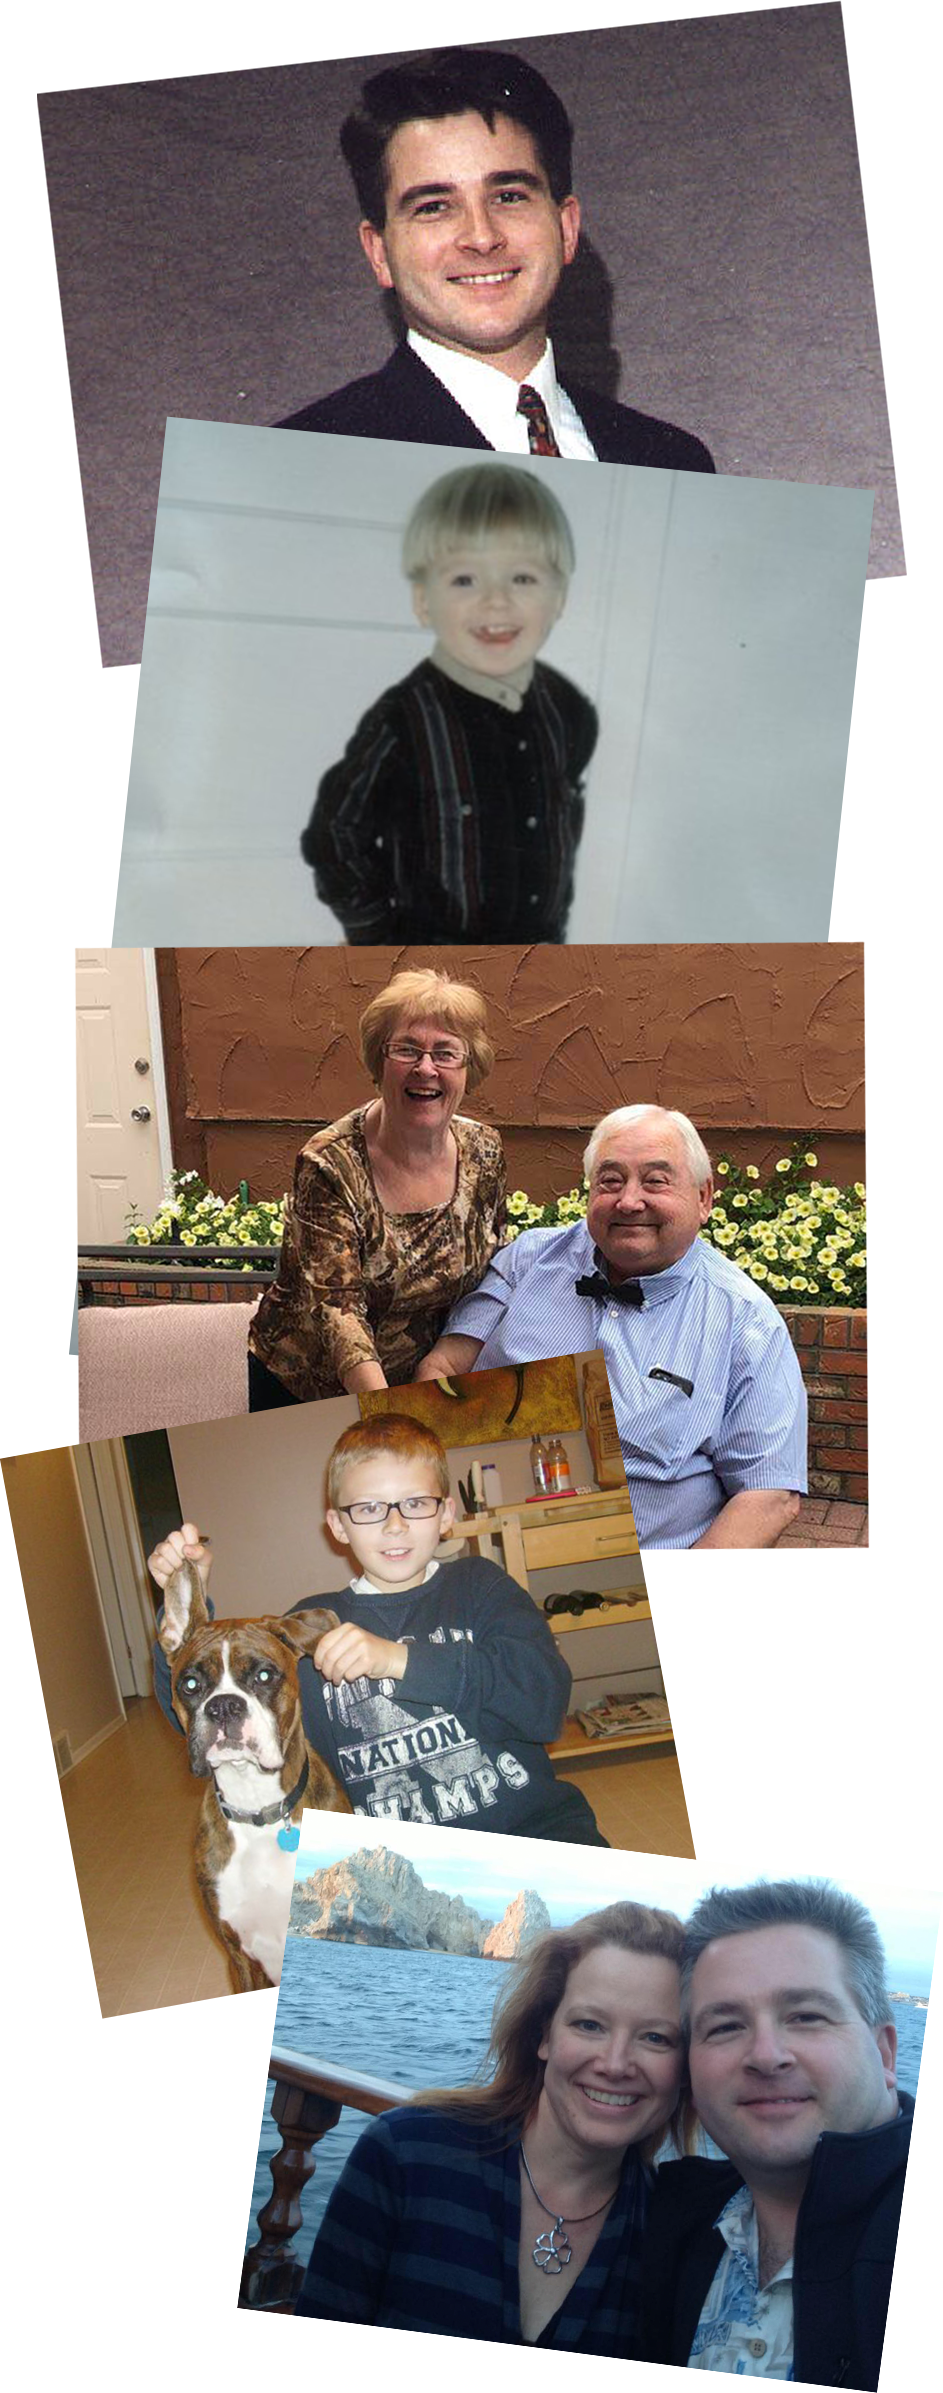 Vertical collage of photos depicting different members of the Summit Meats family